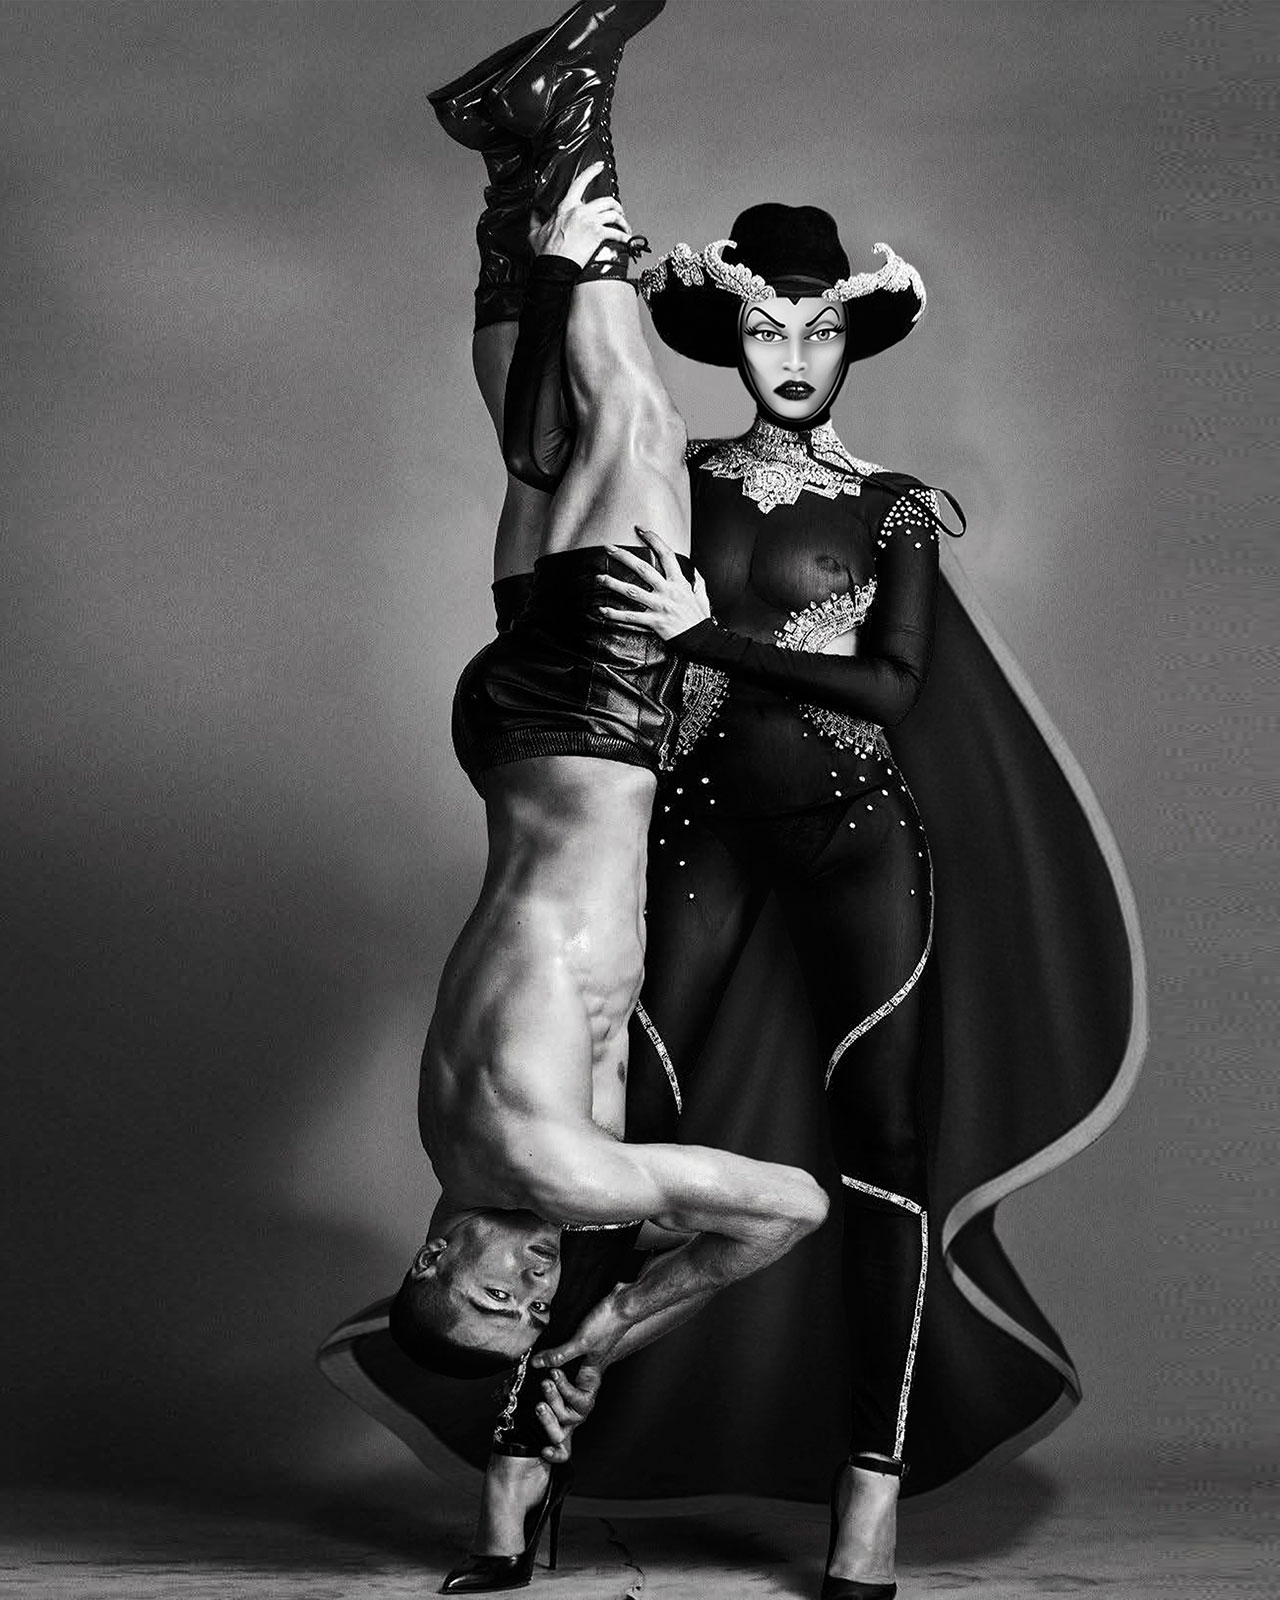 f8_animation_in_reality_by_gregory_masouras_lara_stone_as_evil_queen_in_philipp_plein_cover_august_2016_vogue_italia_photographed_by_steven_klein_yatzer